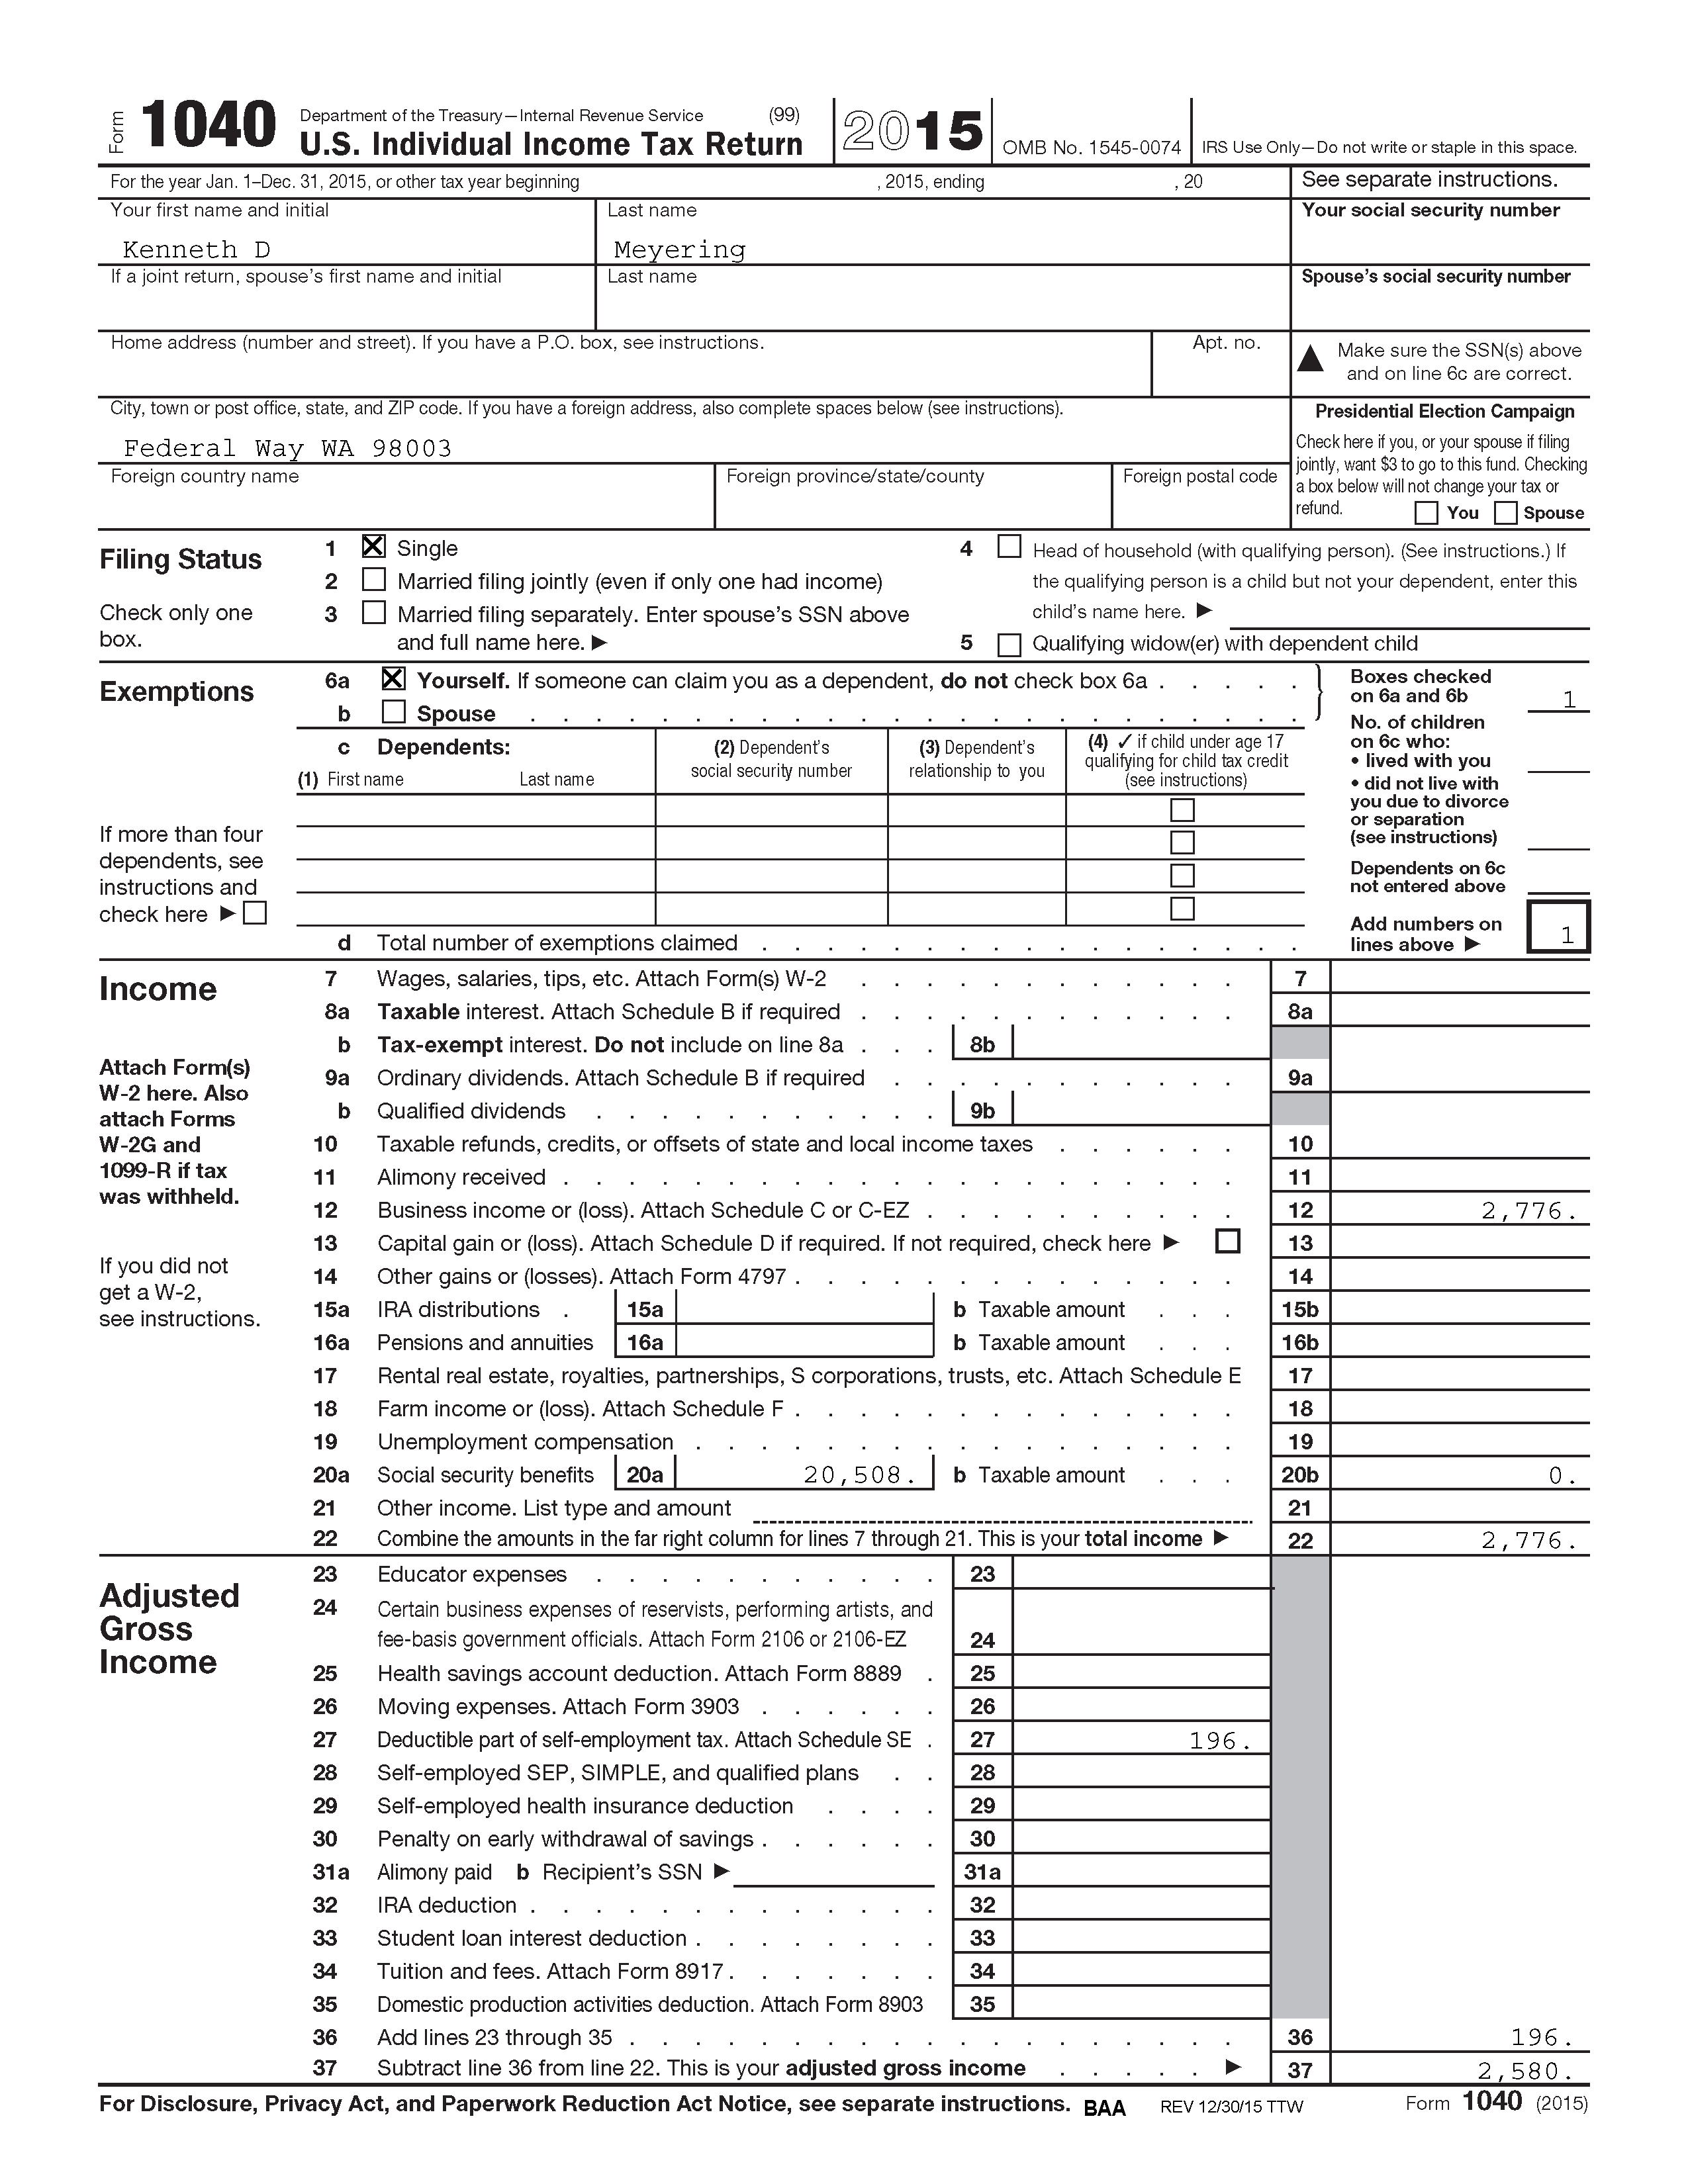 Ken's 2015 Tax Return - Page 1